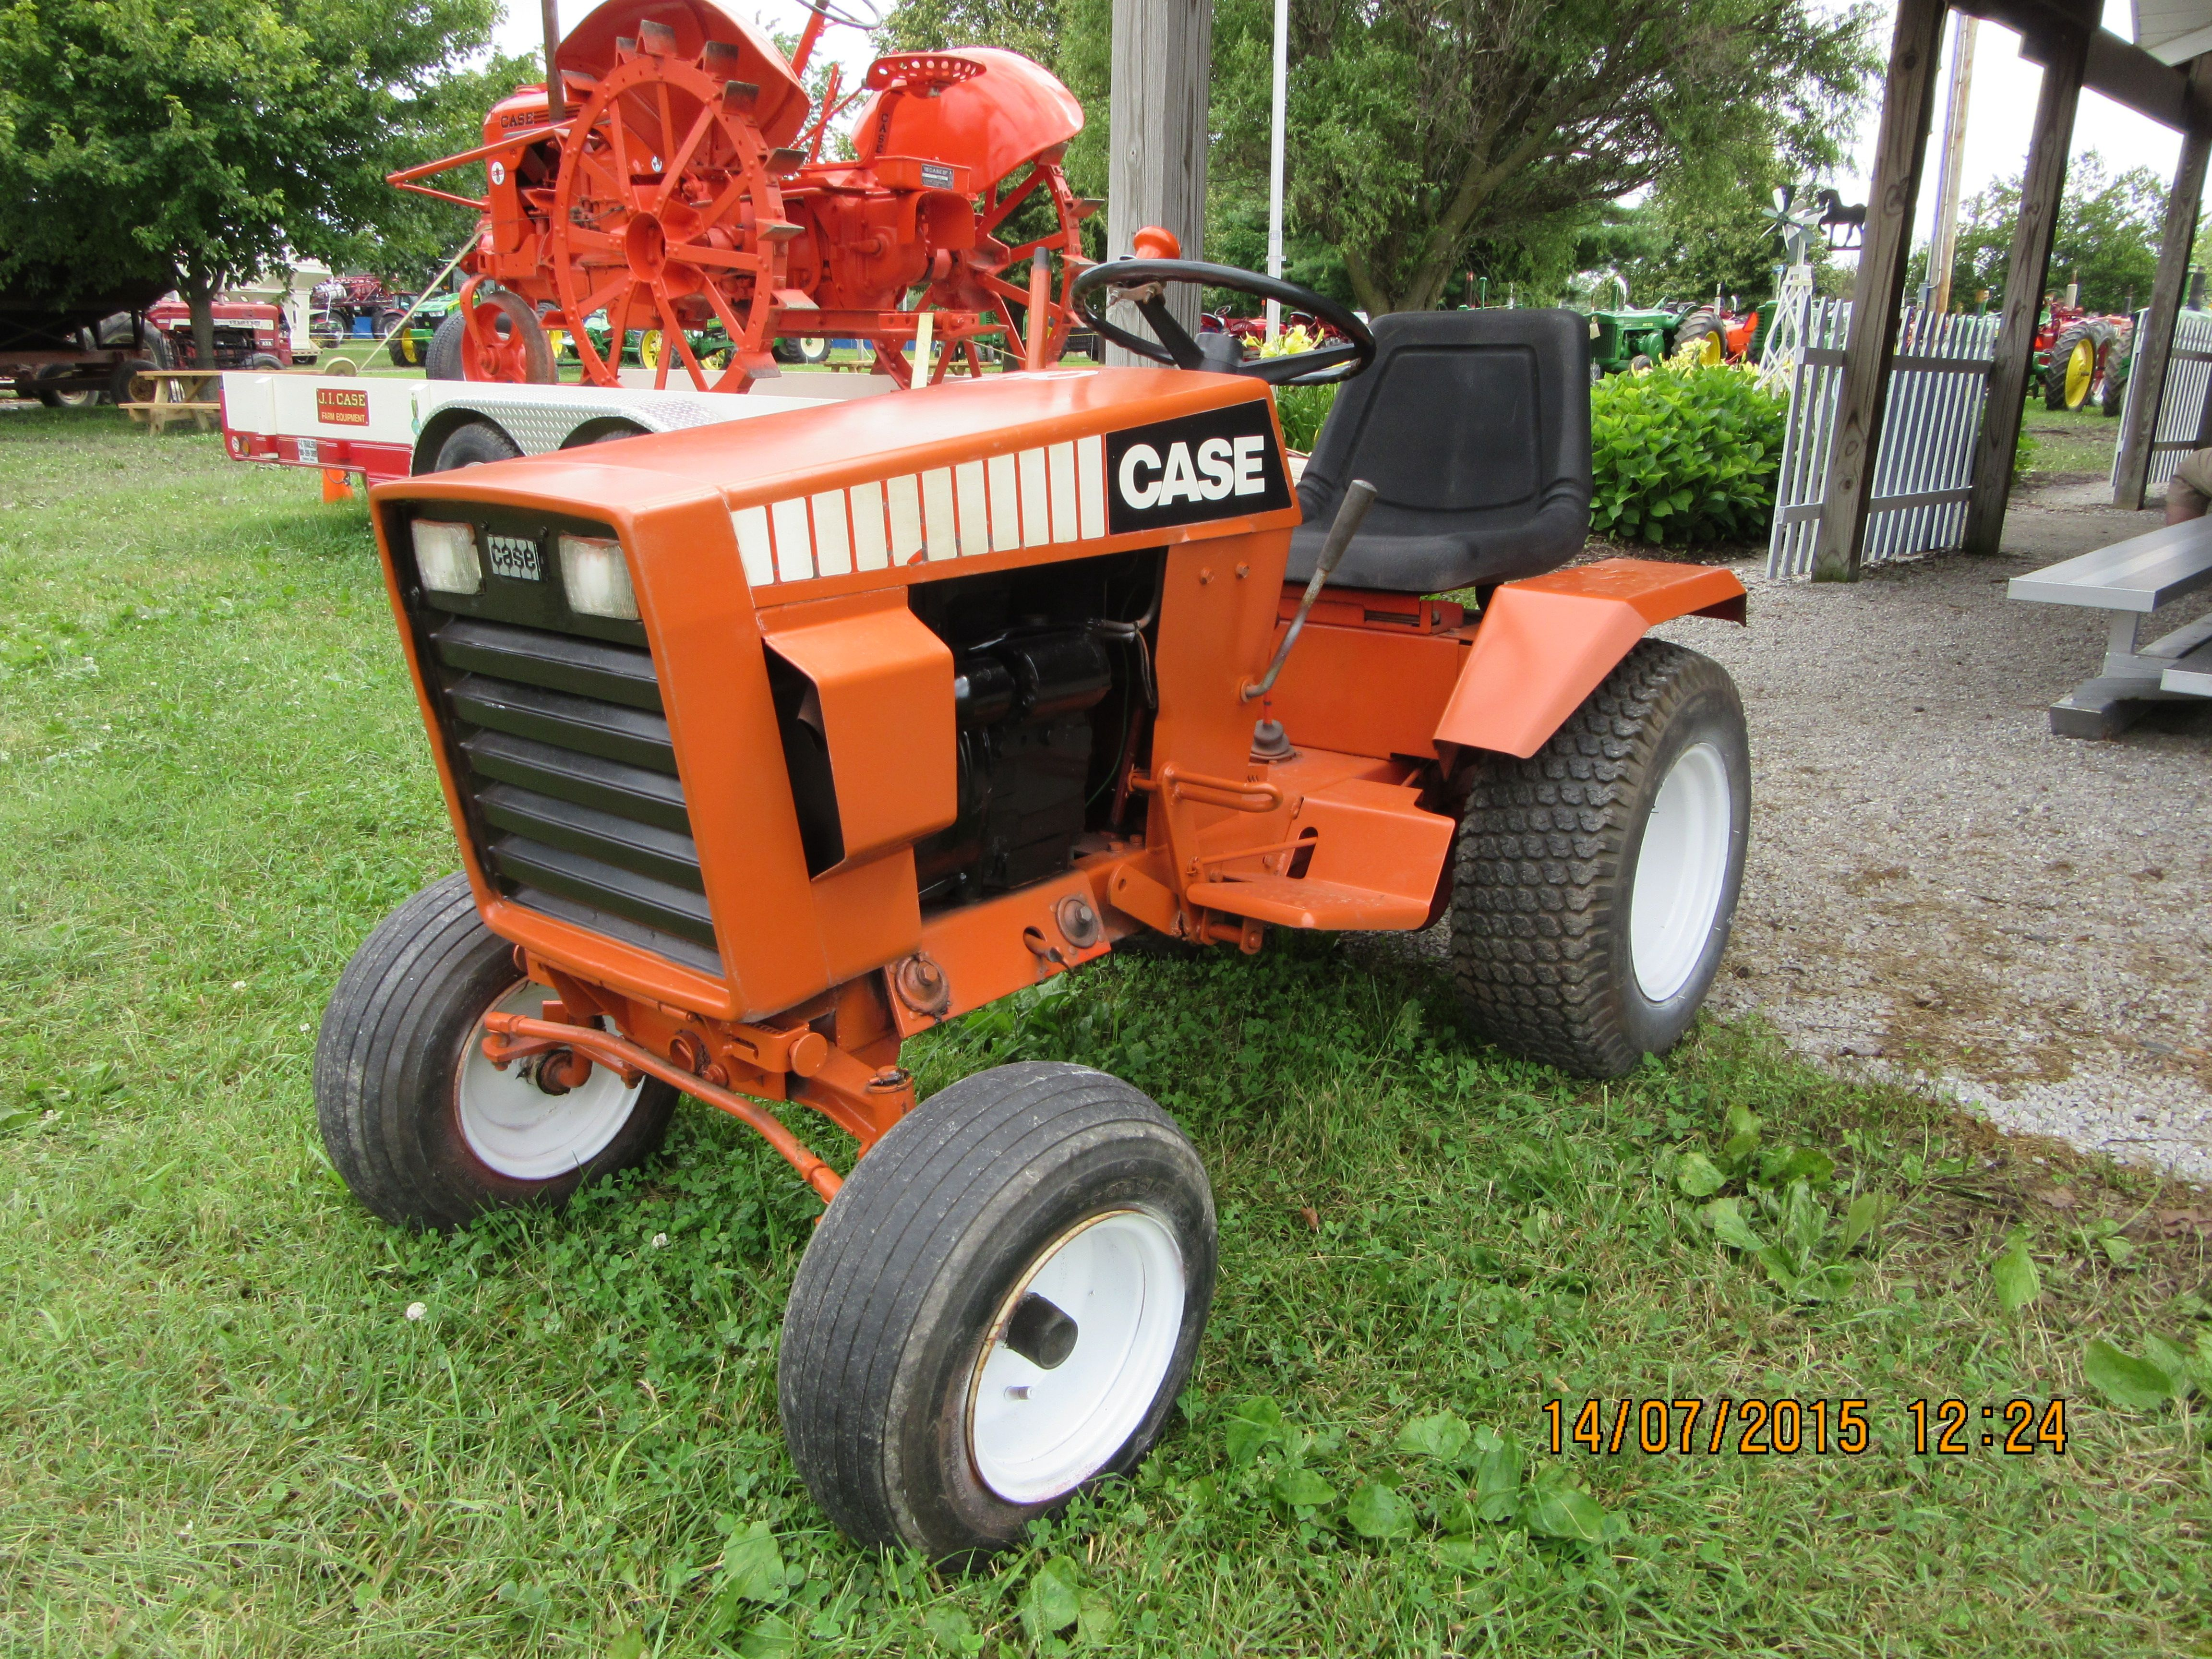 Case Lawn Mowers : J i case lawn garden tractor equipment